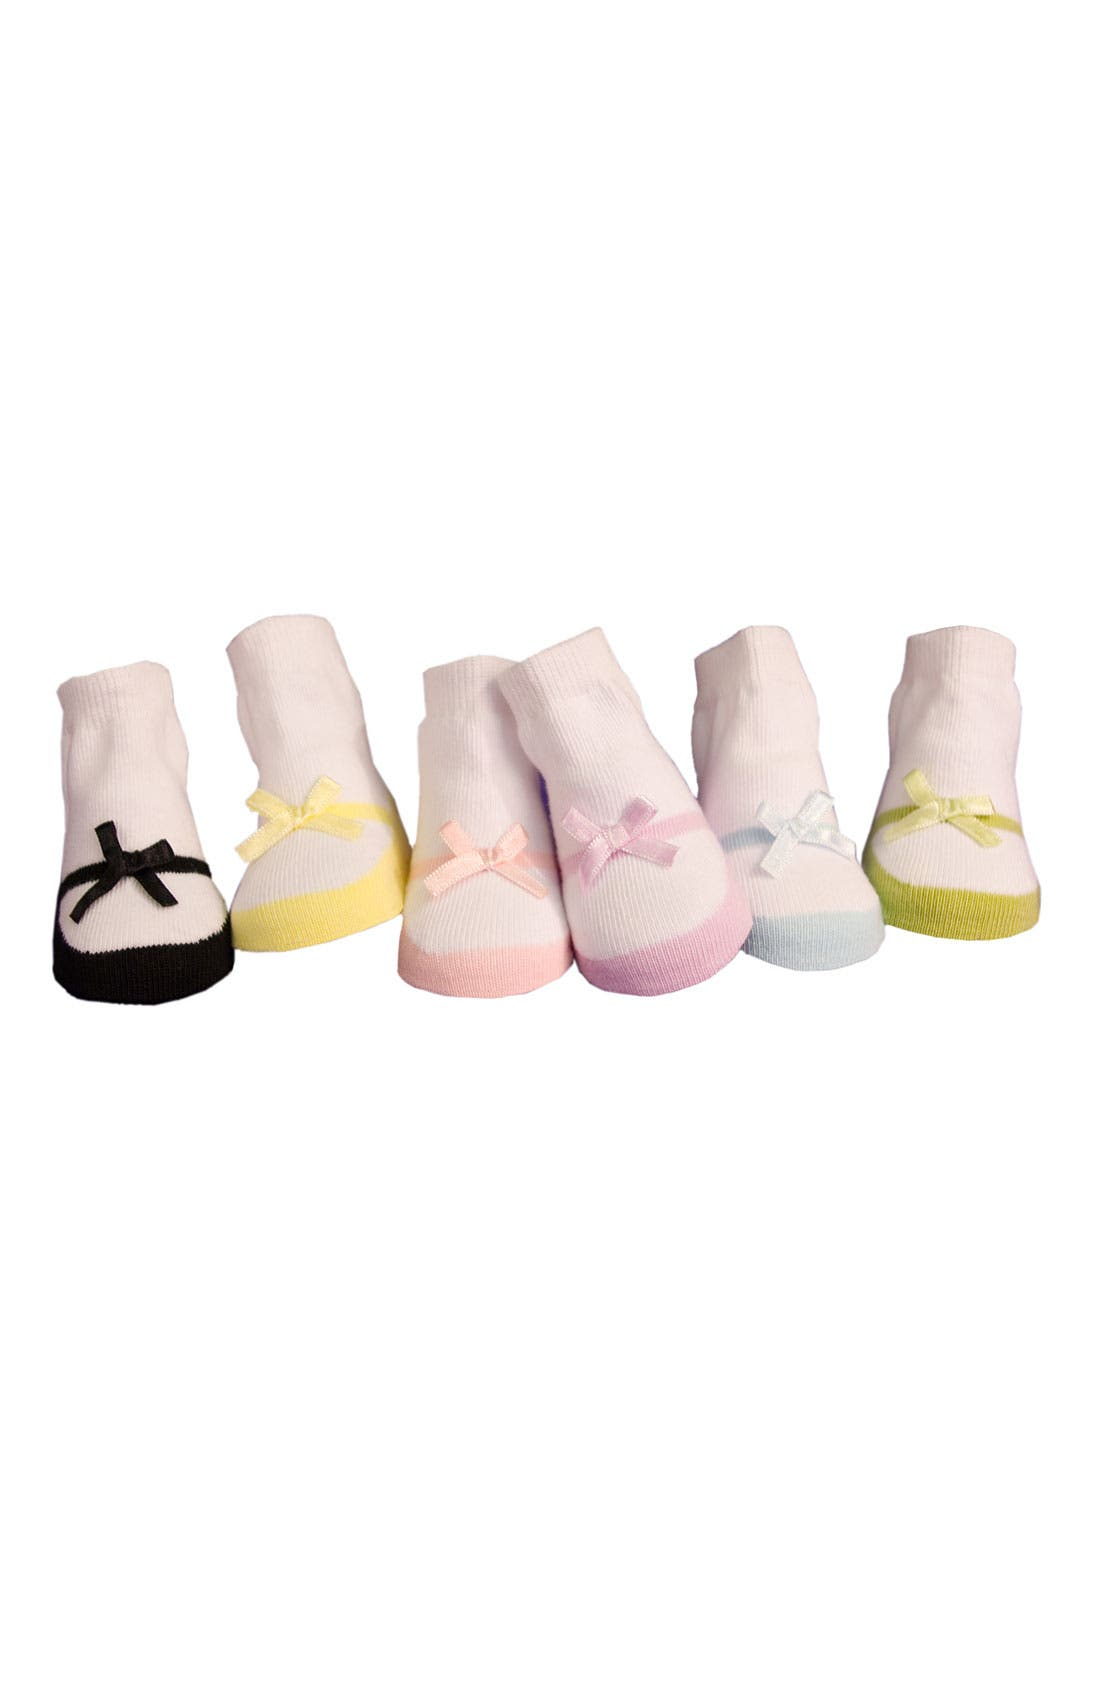 Alternate Image 1 Selected - Trumpette Socks Gift Set (Baby Girls)